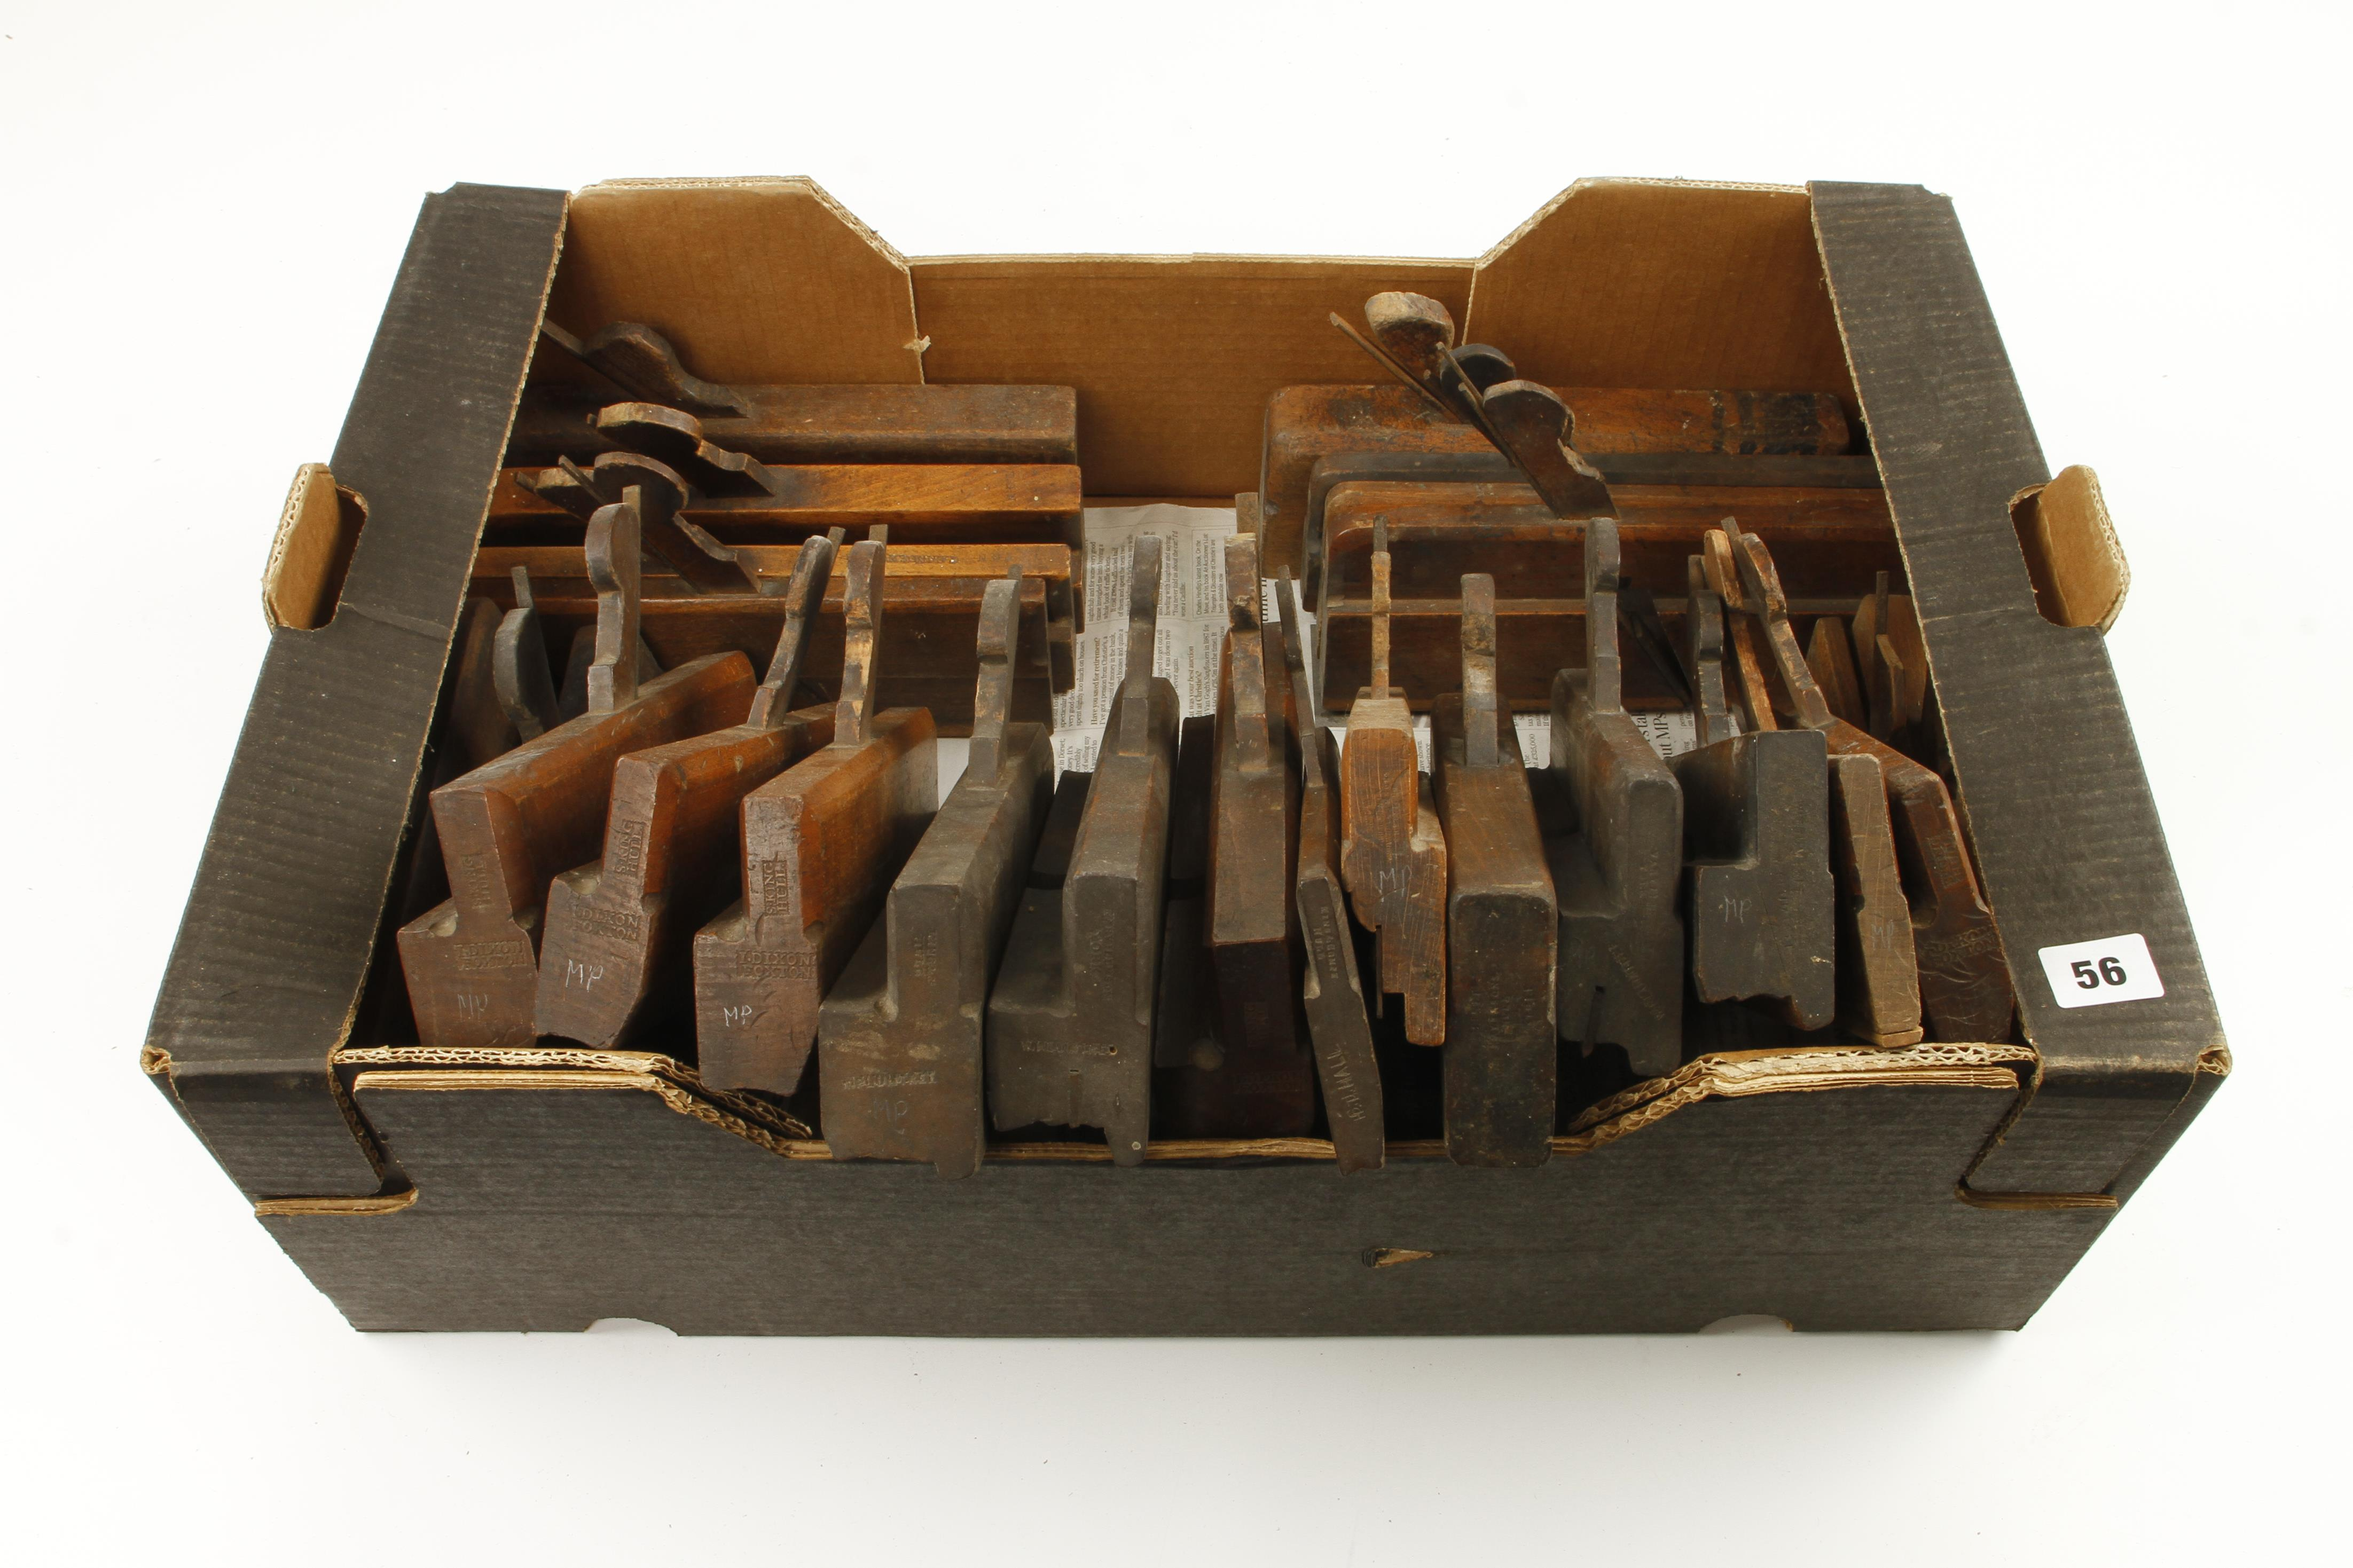 Lot 56 - 64 moulding planes and 5 others in 3 boxes G